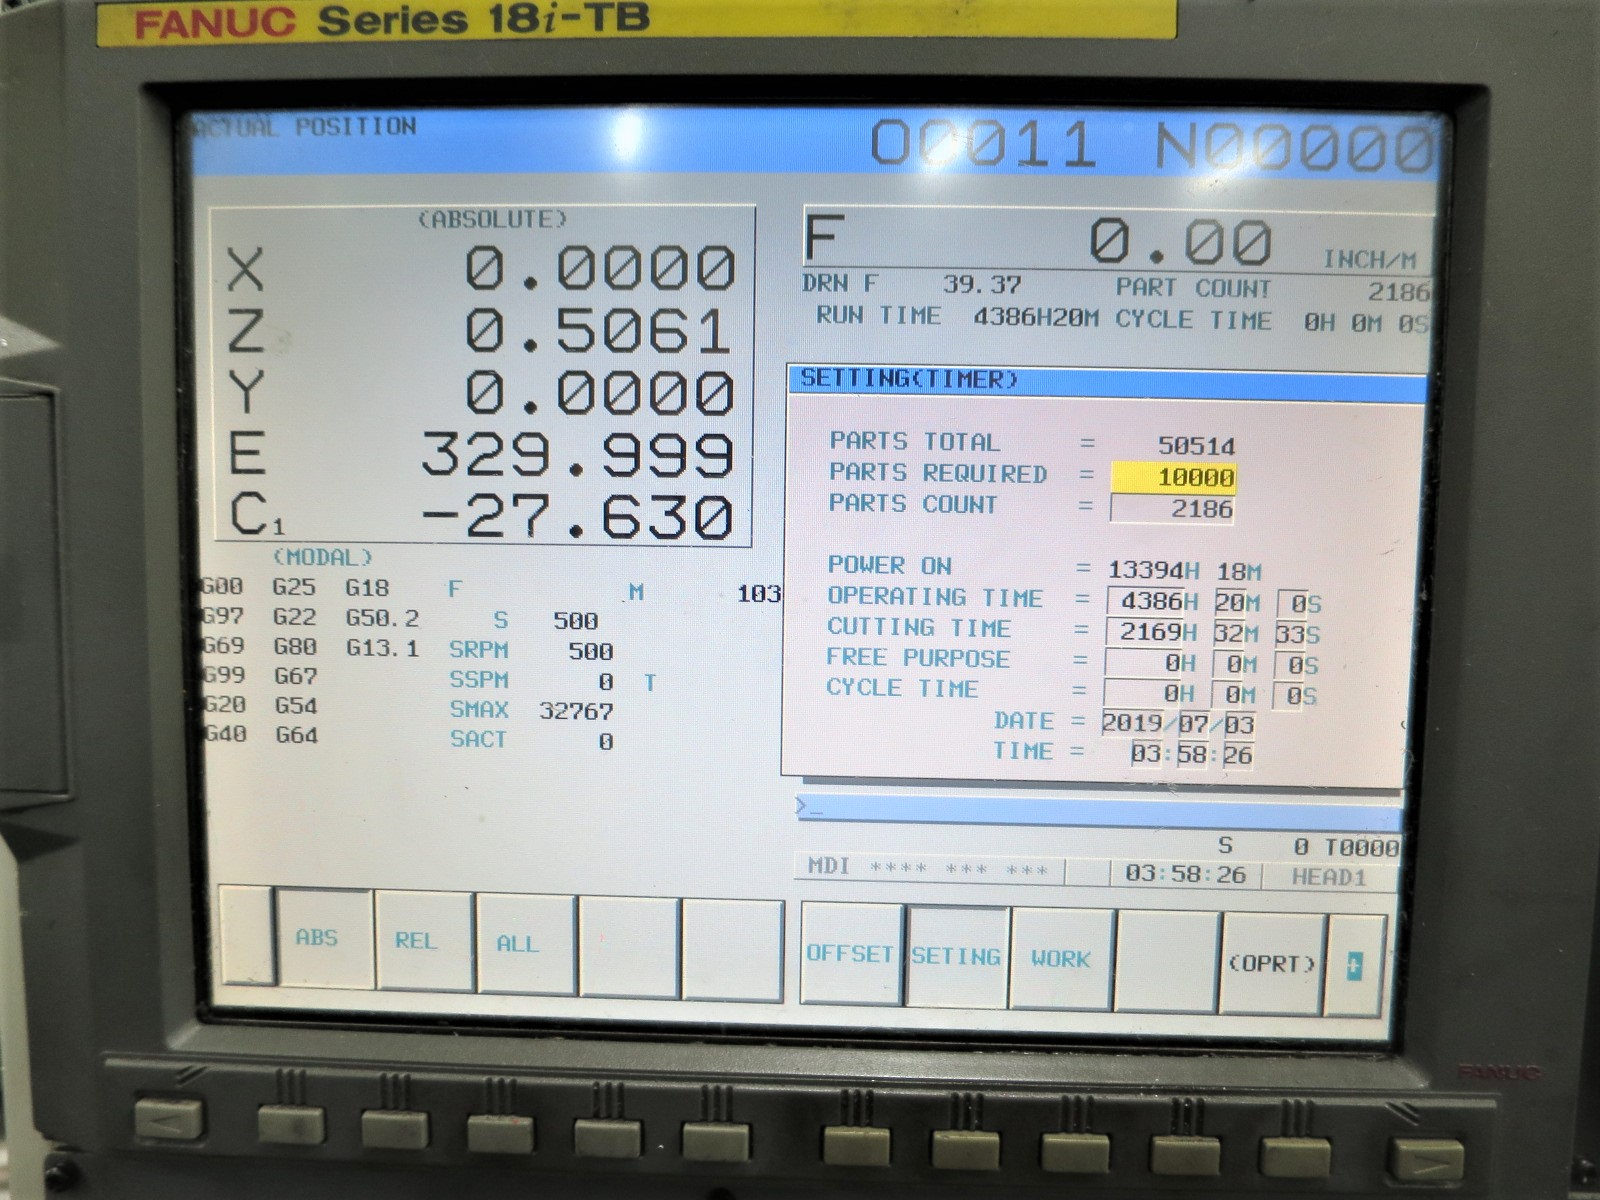 Lot 37 - Doosan Z290-SMY Twin Spindle, Twin Turret CNC Lathe W/Milling & Y-Axis, S/N 2290-SMY, New 2006